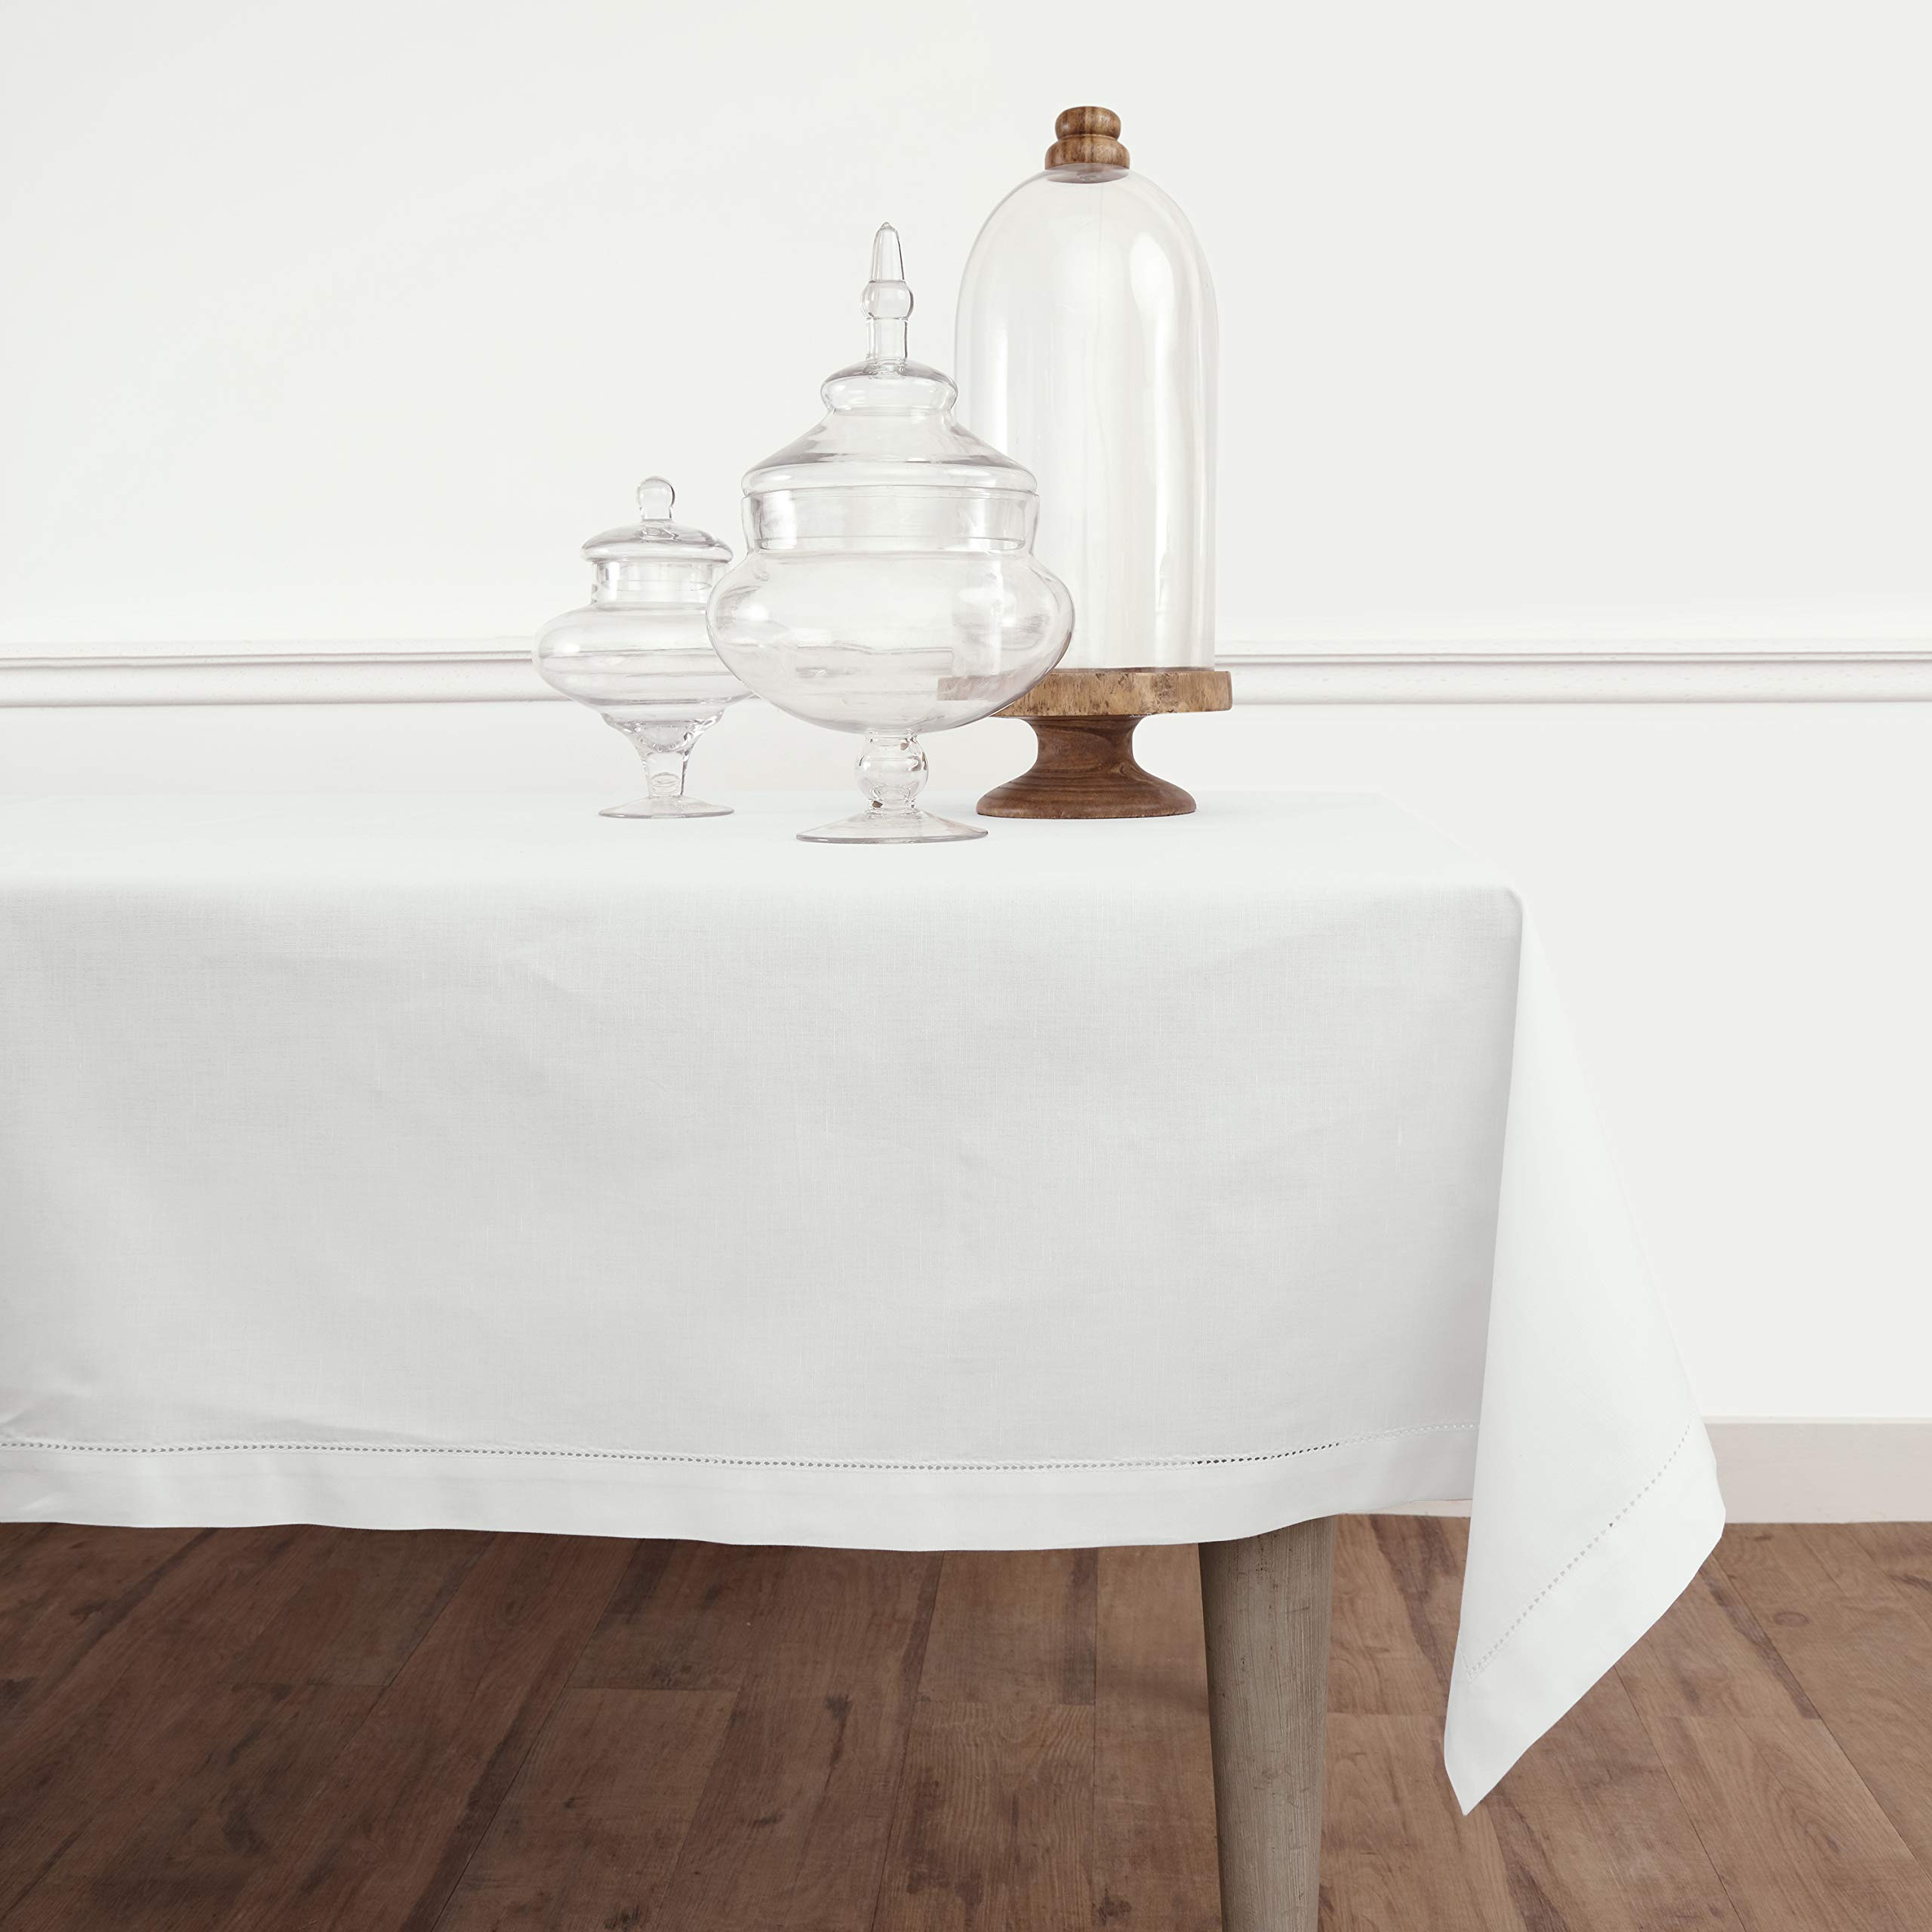 Solino Home Hemstitch Cotton Linen Tablecloth – 54 x 72 Inch, Natural Fabric Machine Washable - White Tablecloth for Indoor and Outdoor use